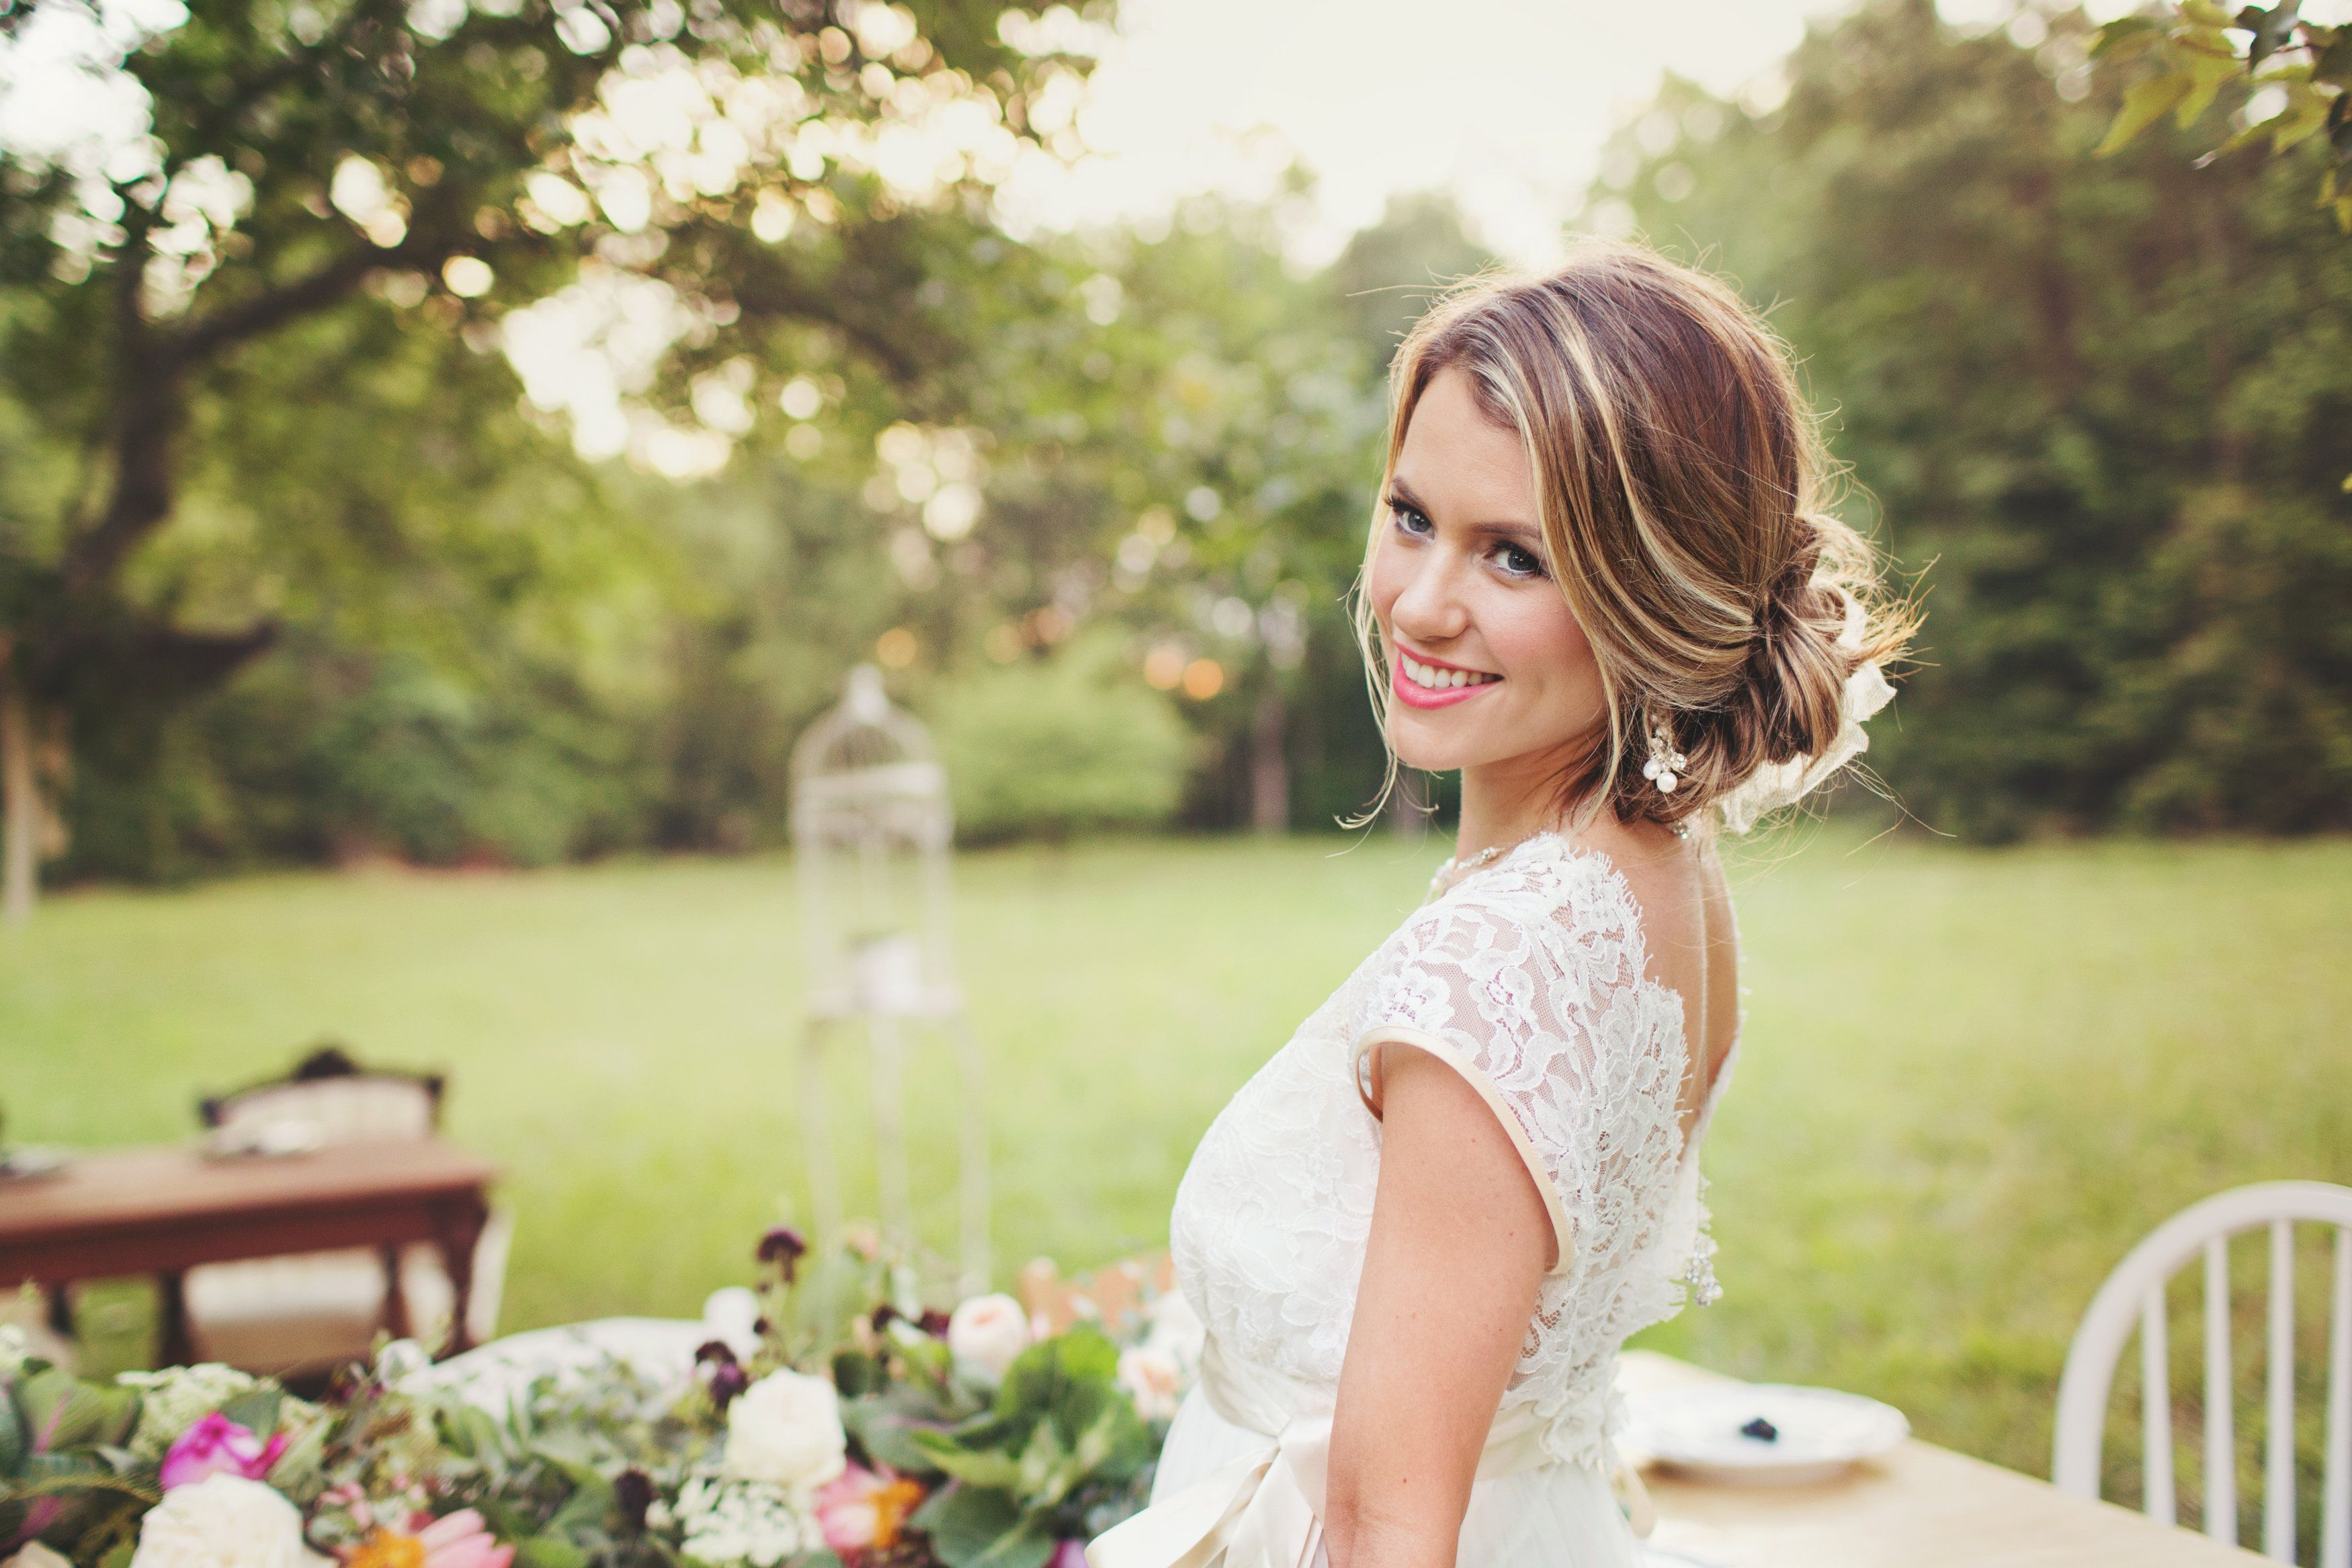 Old South Vintage Rentals   Jordan Fish   Aubre's Bridal   Makeup by Jenny Le   Claire Pettibone   New Creations Flower Company   The Wow Factor Cakes   Bailey Smith Photography